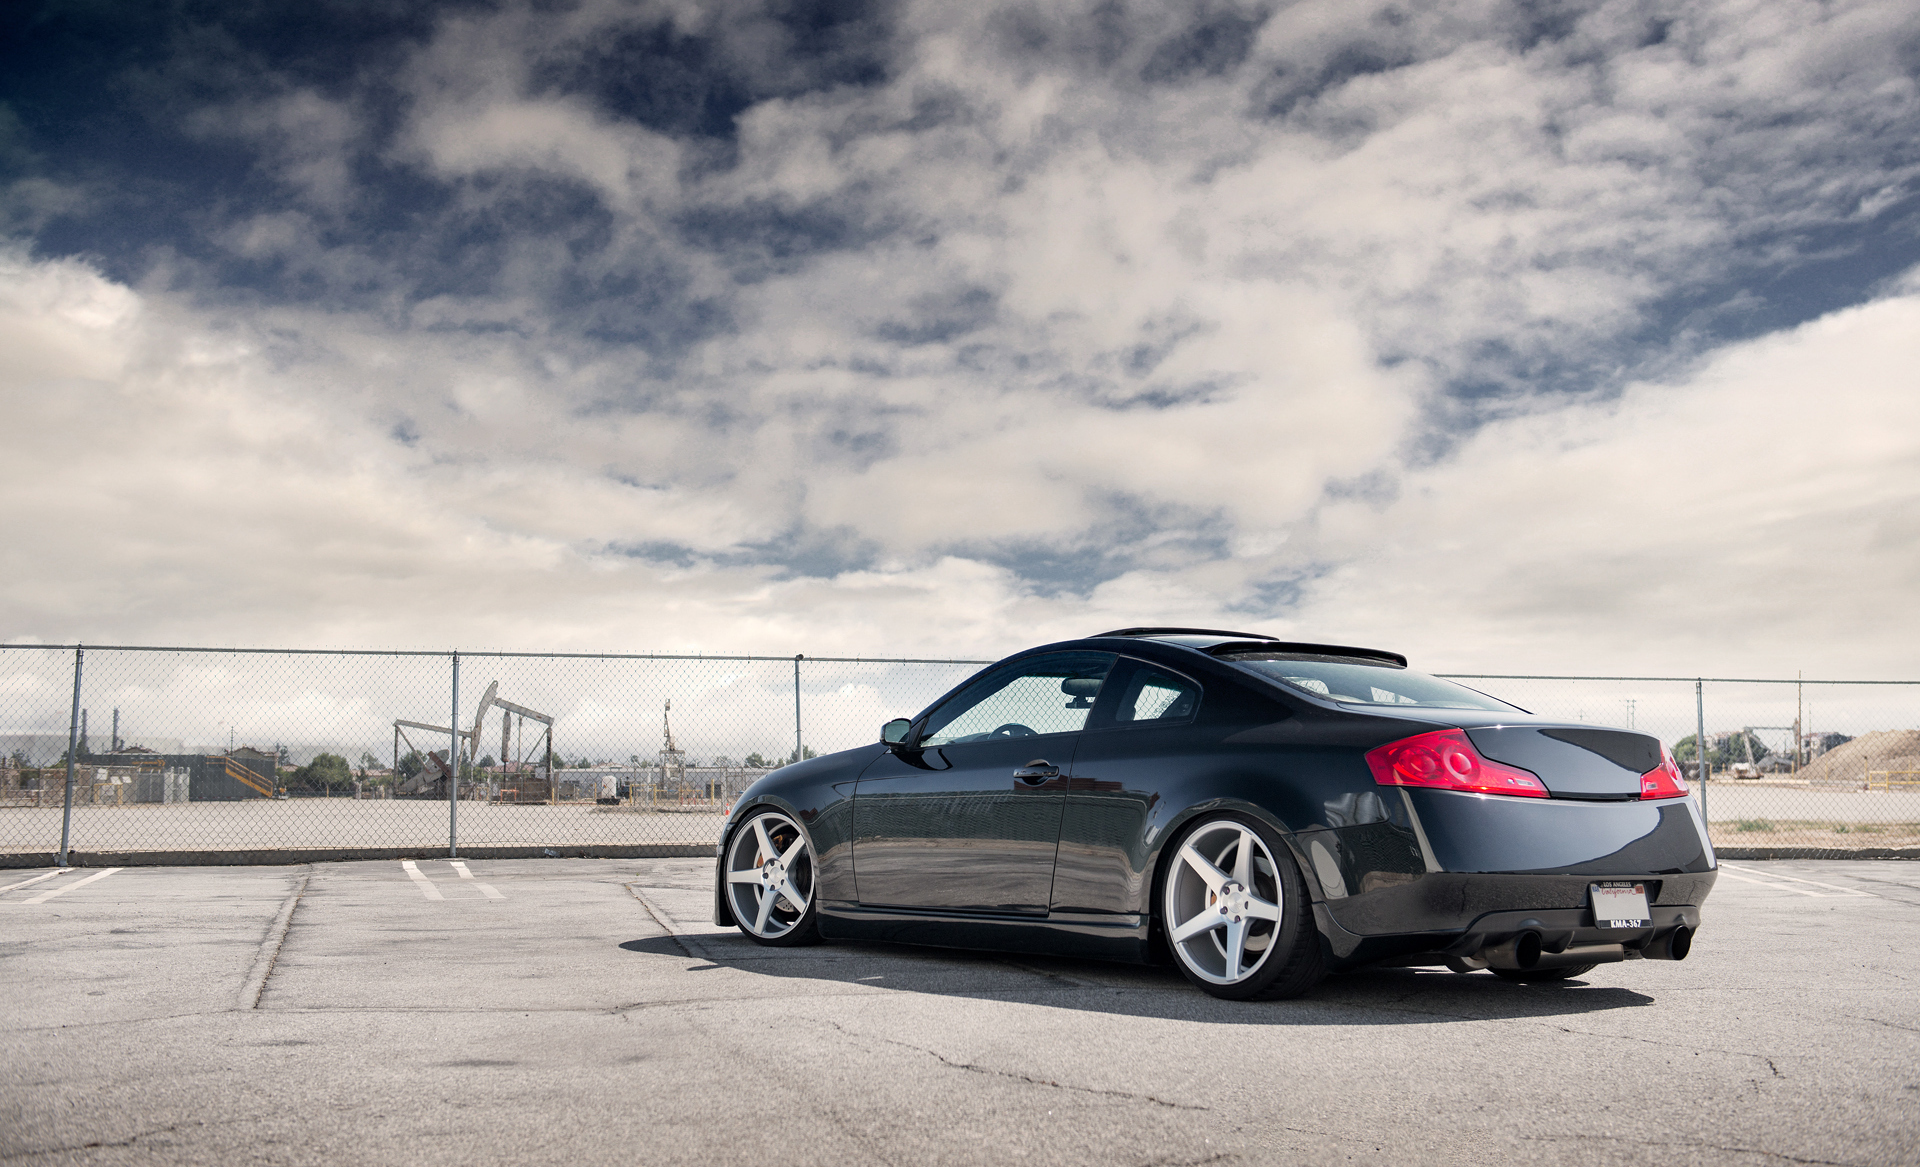 2 Infiniti G35 Hd Wallpapers Background Images